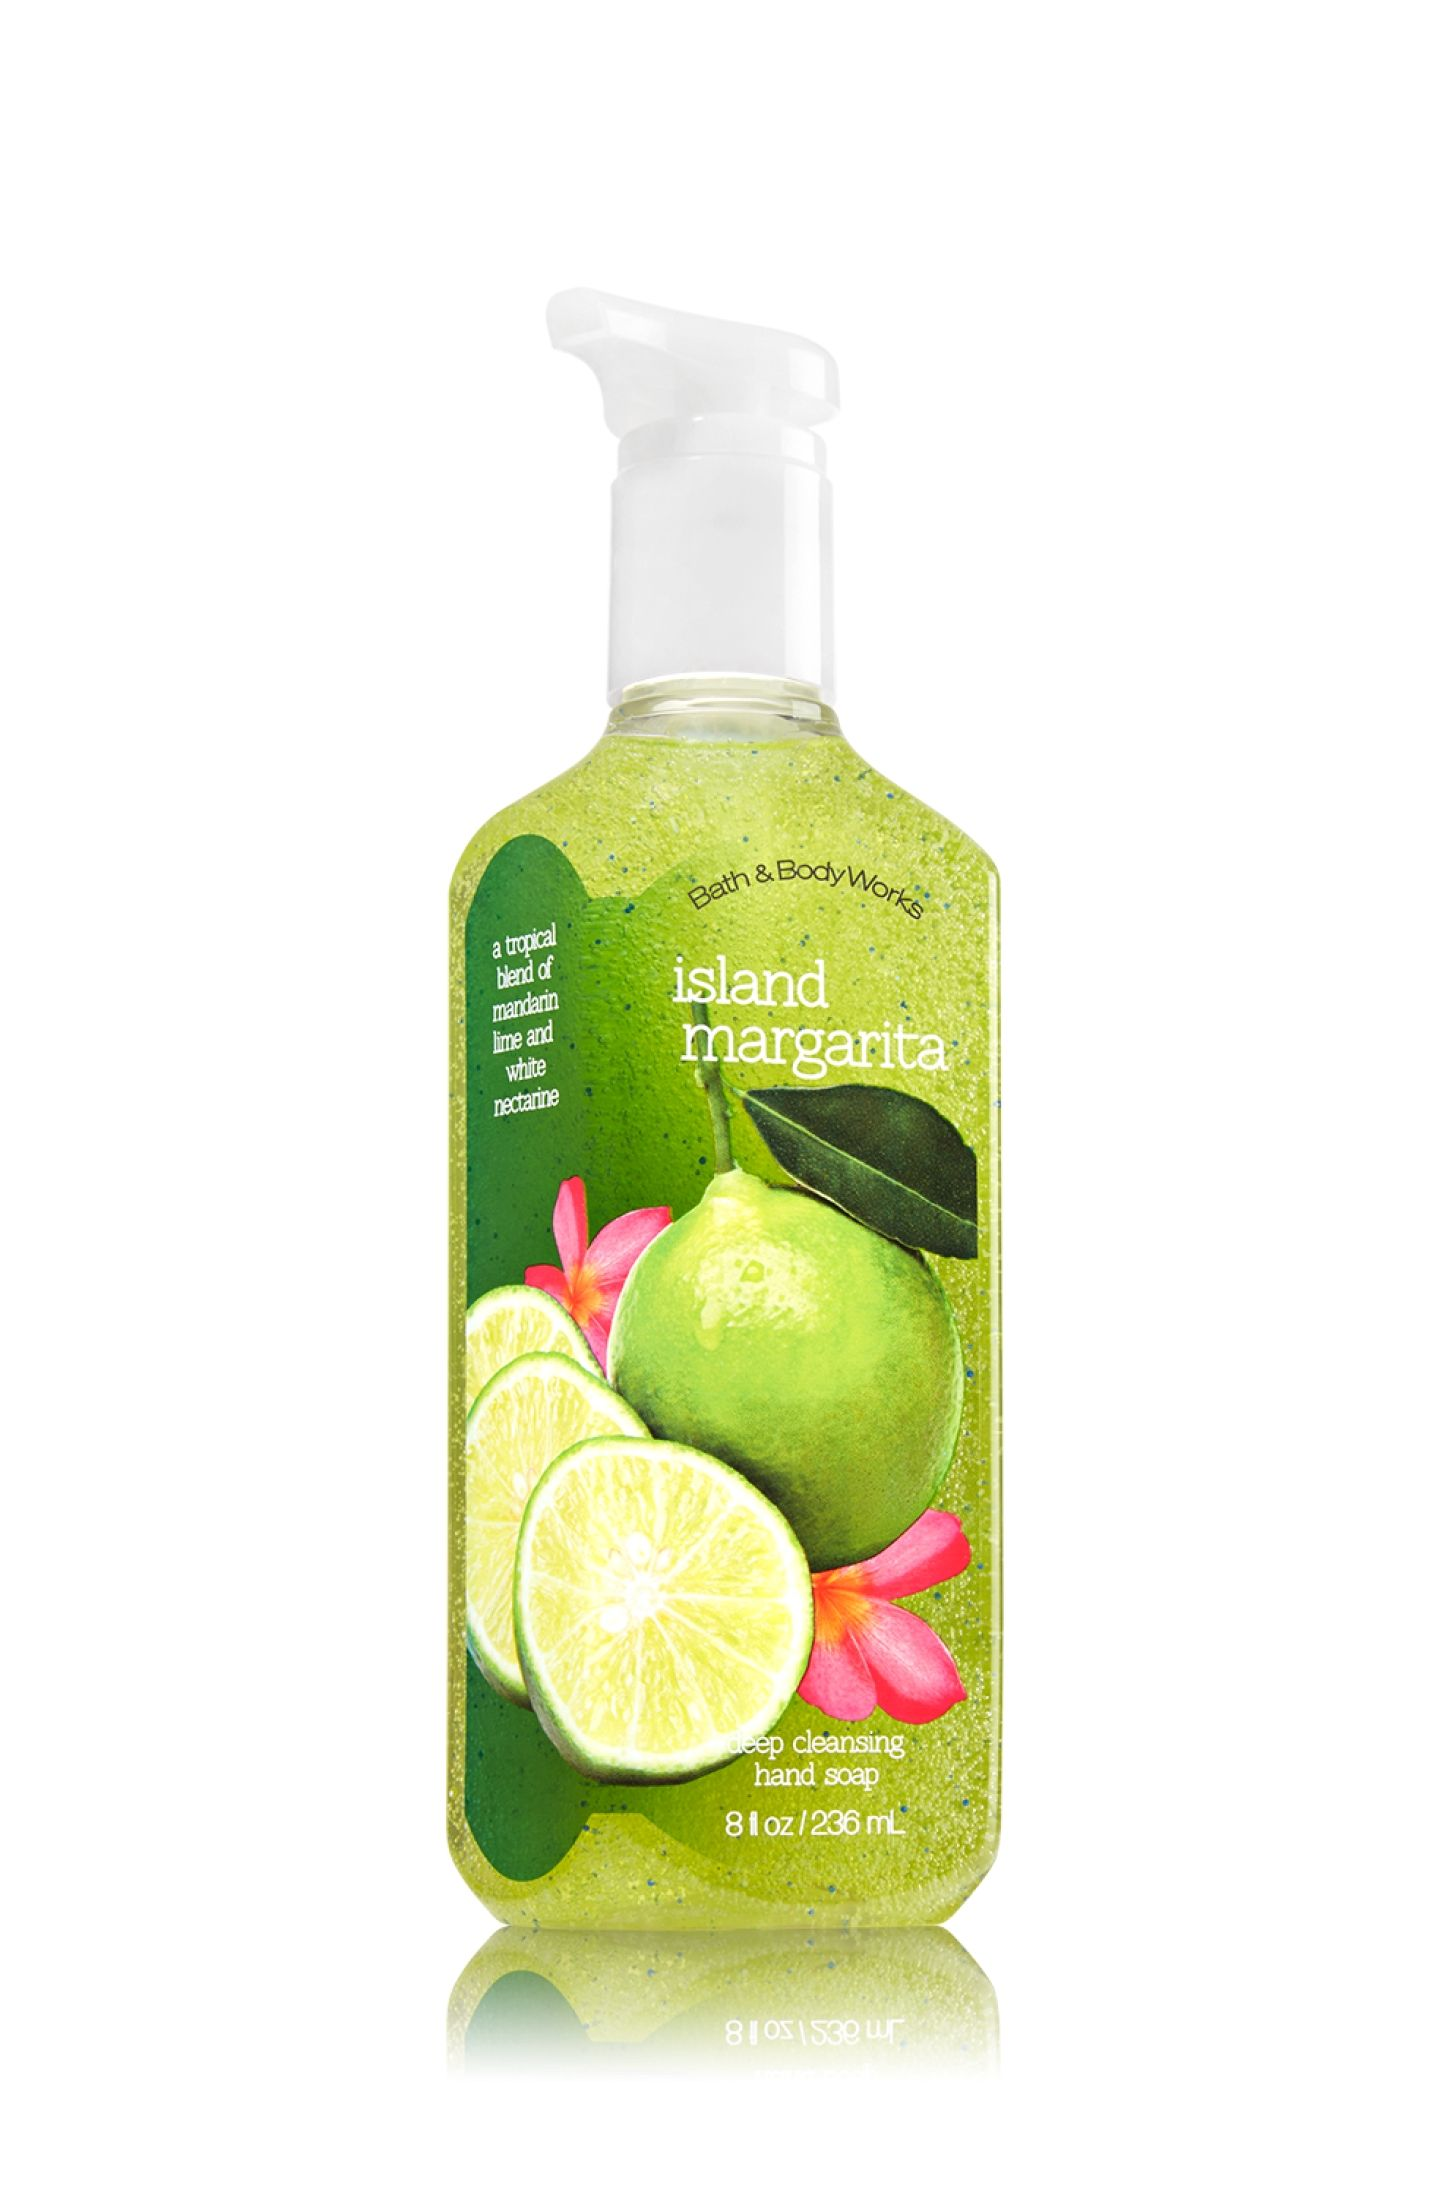 Island Margarita Deep Cleansing Hand Soap Soap Sanitizer Bath